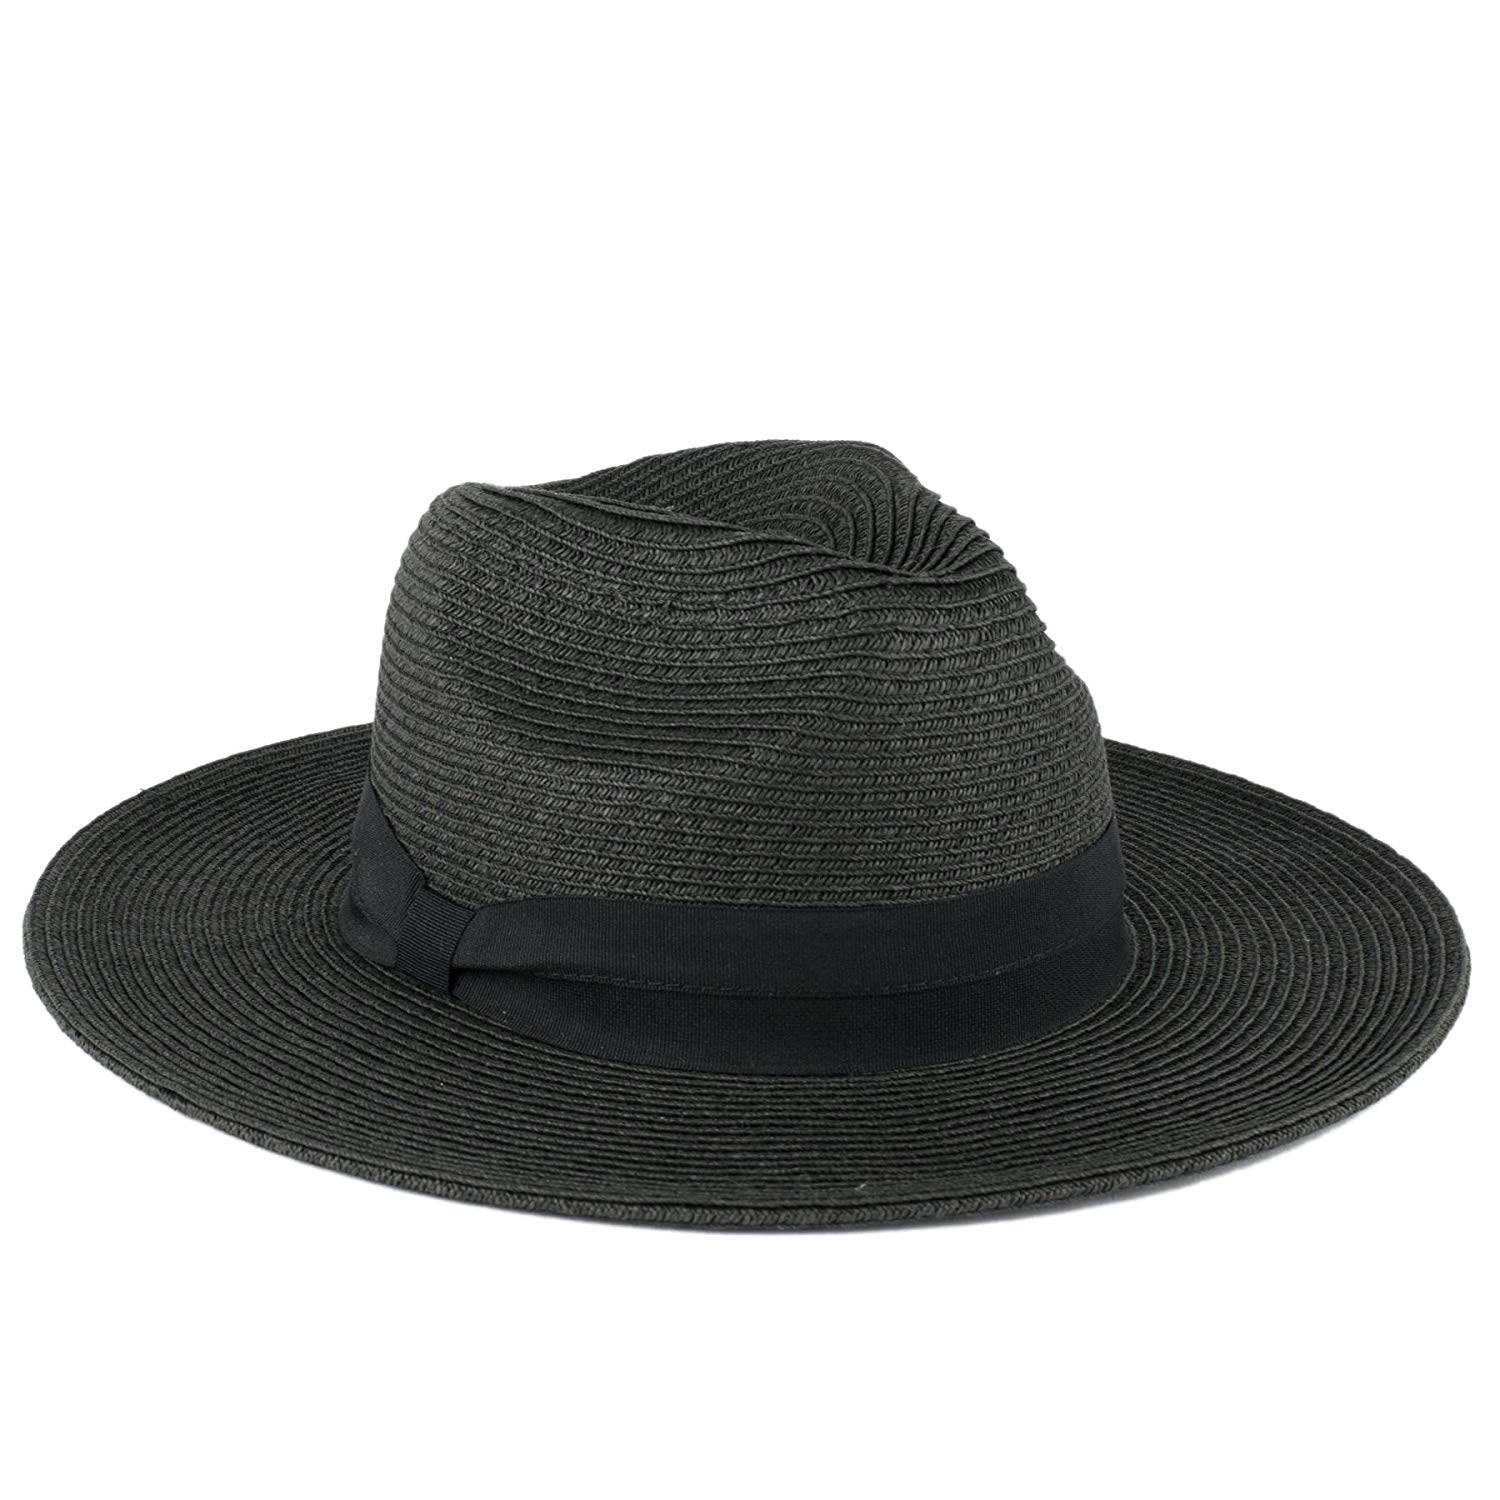 5bf82f4c188 Get Quotations · Wide Brimmed Summer Fedora Hat with Black Grosgrain Band